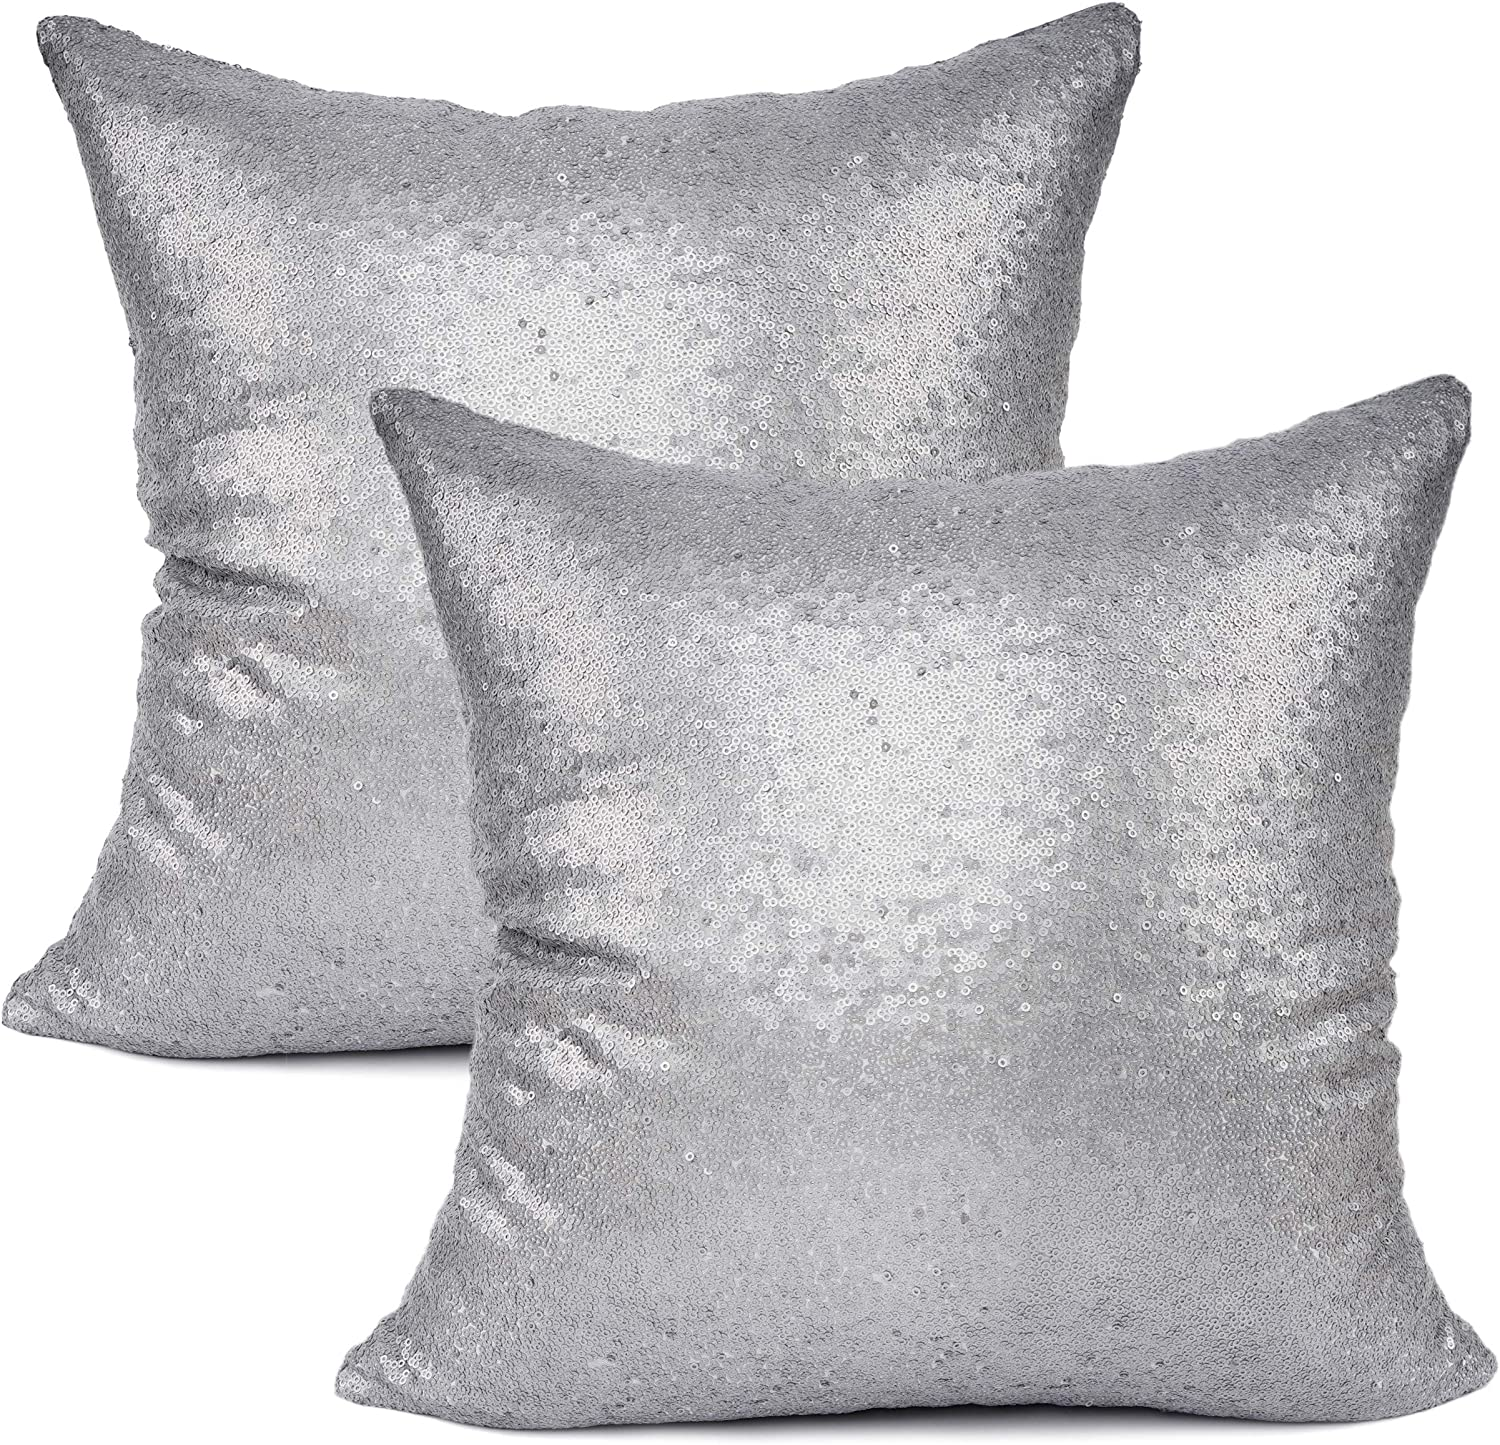 """YOUR SMILE Pack of 2, New Luxury Series Grey Decorative Glitzy Sequin & Comfy Satin Solid Throw Pillow Cover Cushion Case for Wedding/Party,18"""" x 18"""""""